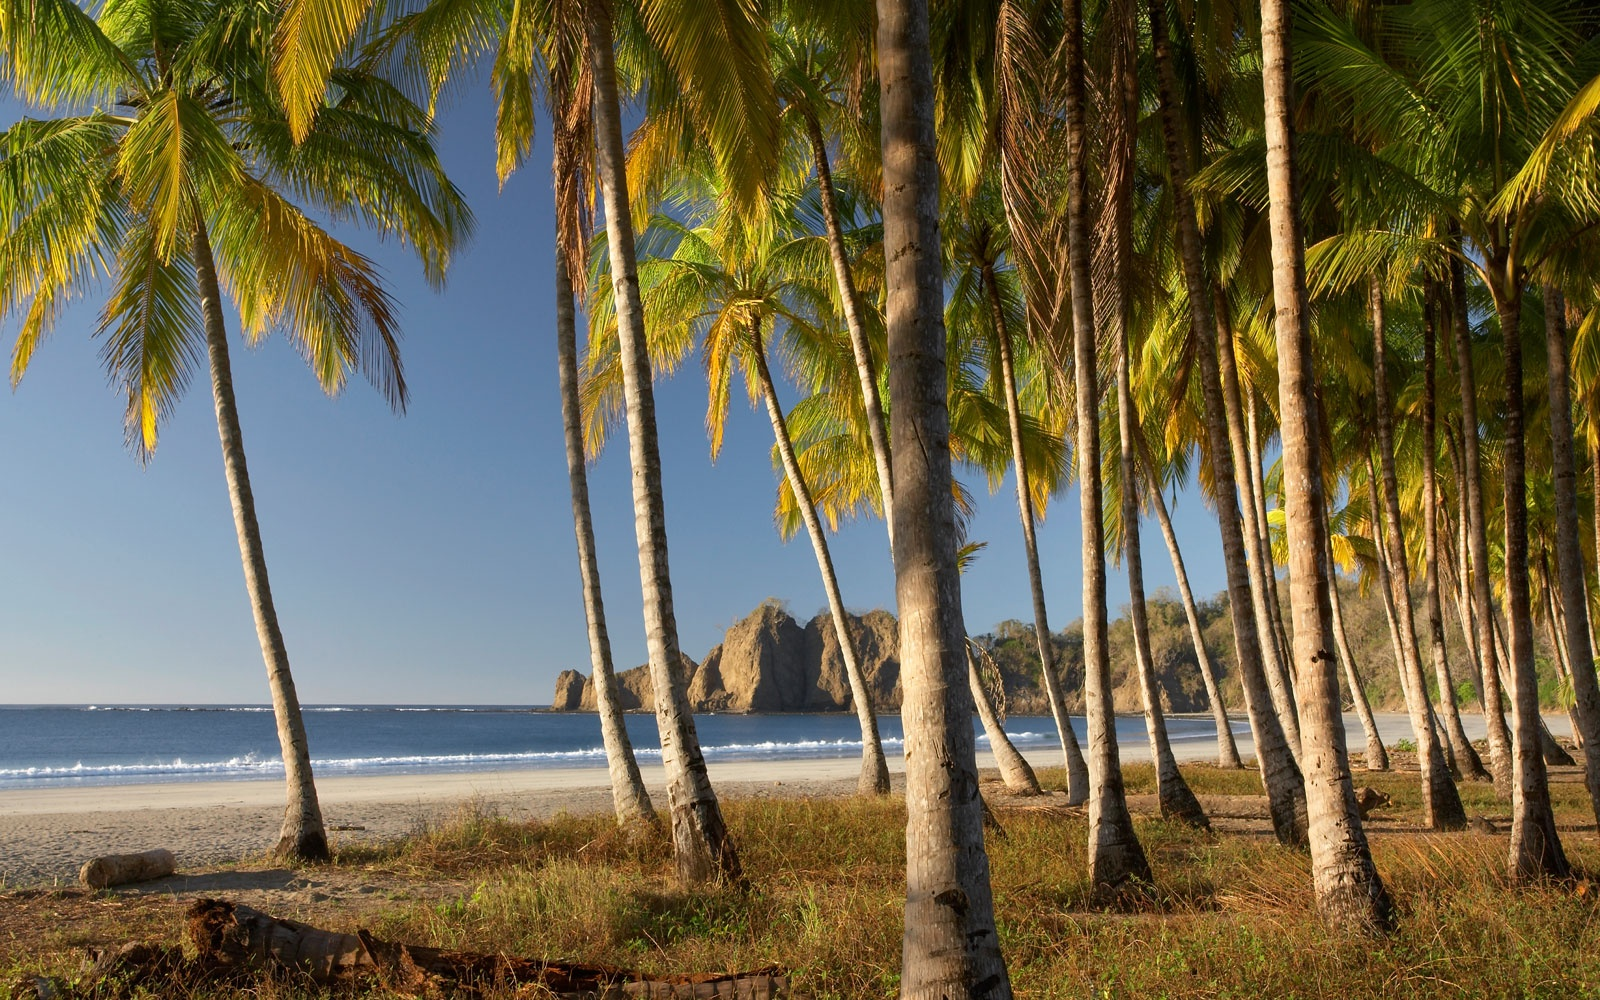 Playa Carrillo, Costa Rica